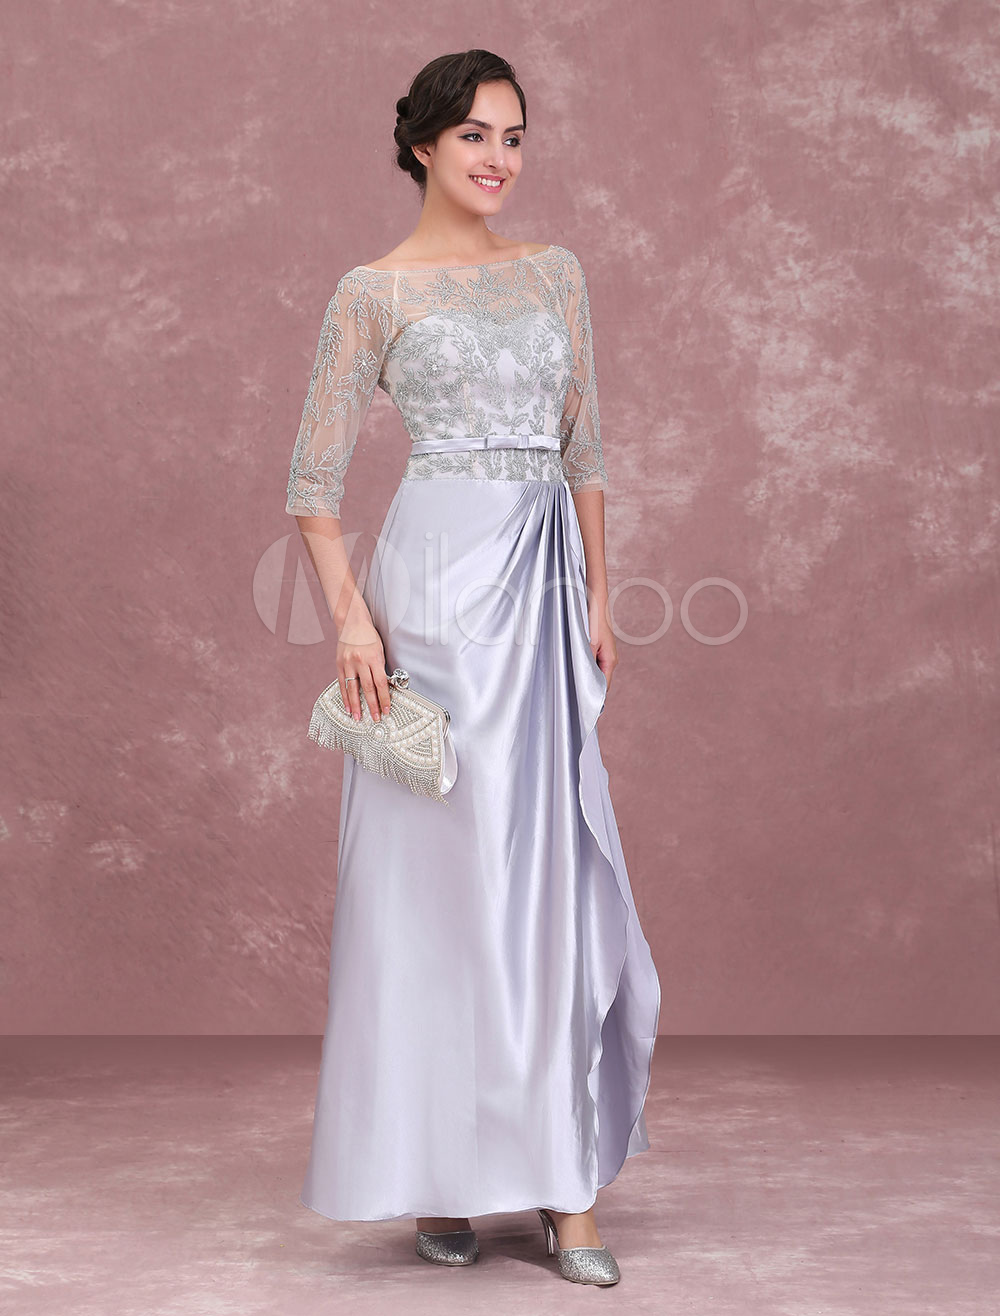 Mother Of The Bride Dresses Silver Beading Bateau Half Sleeve Sash Pleated Floor Length Wedding Guest Dress